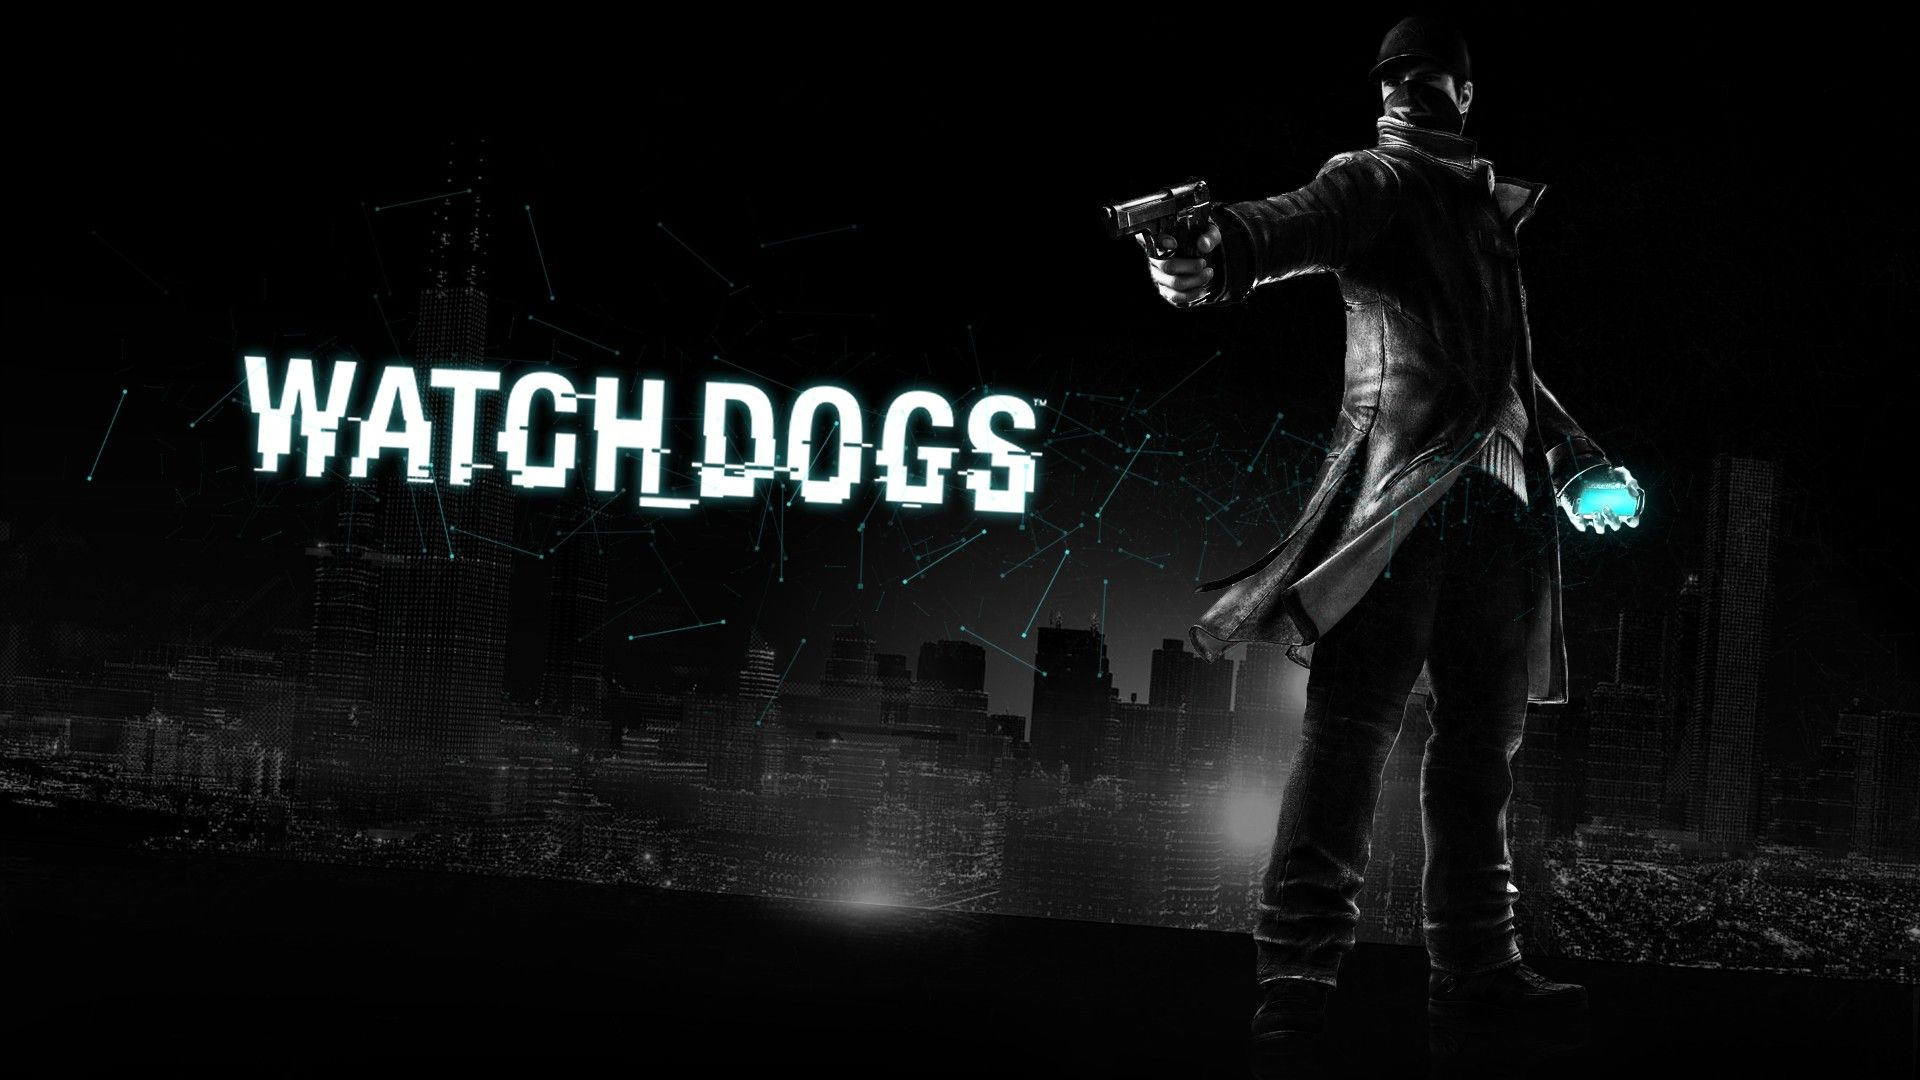 watch dogs wallpaper watch dogs pinterest